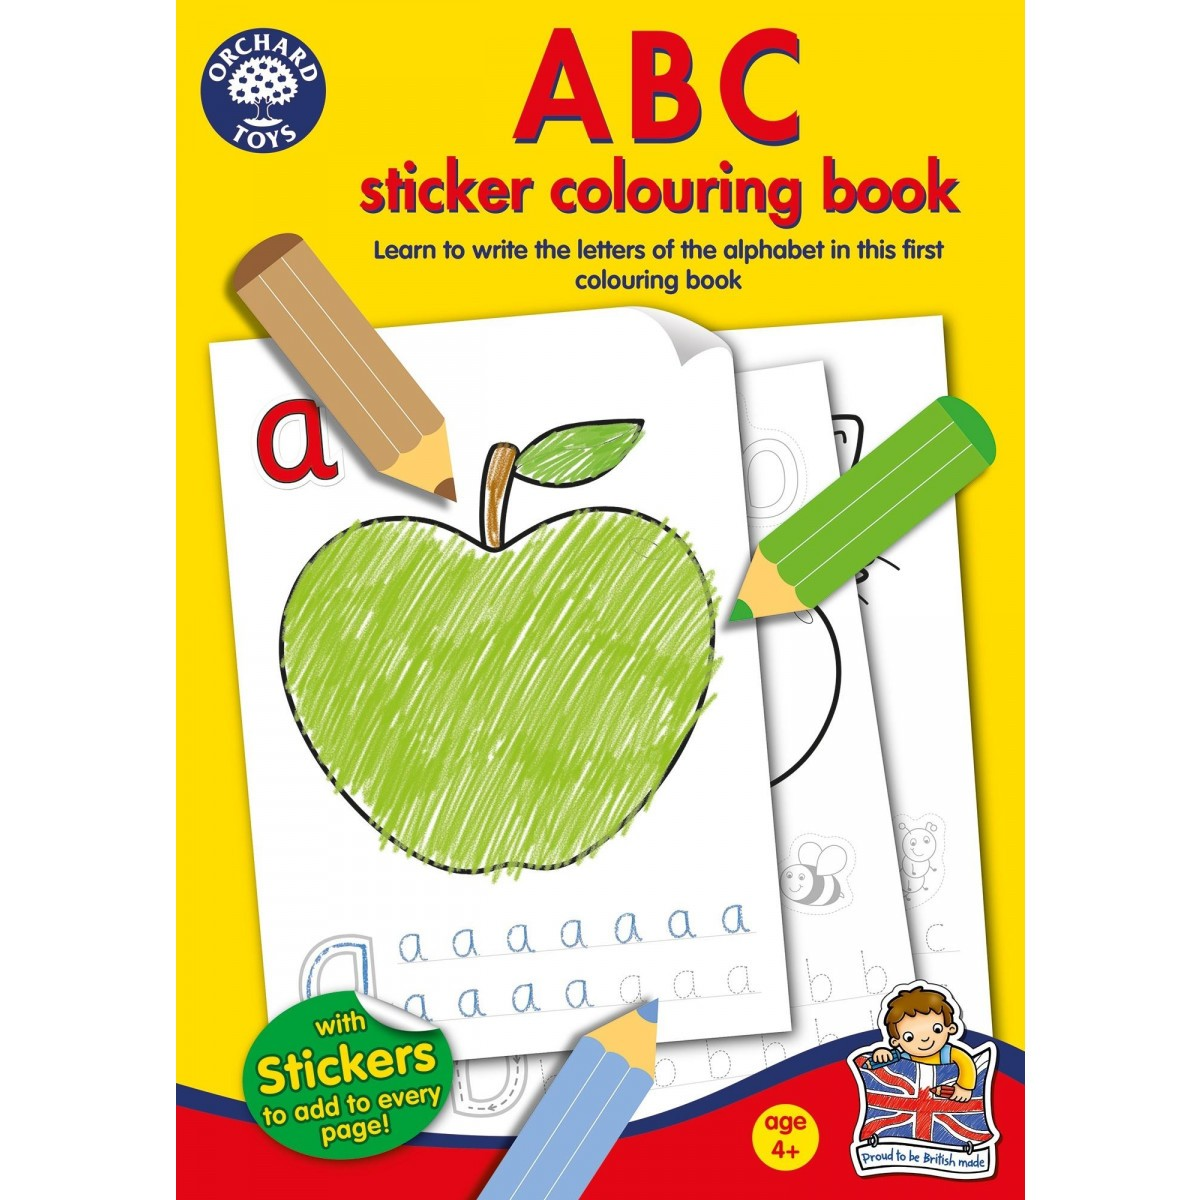 A B C Sticker Colouring Book by Orchard Toys